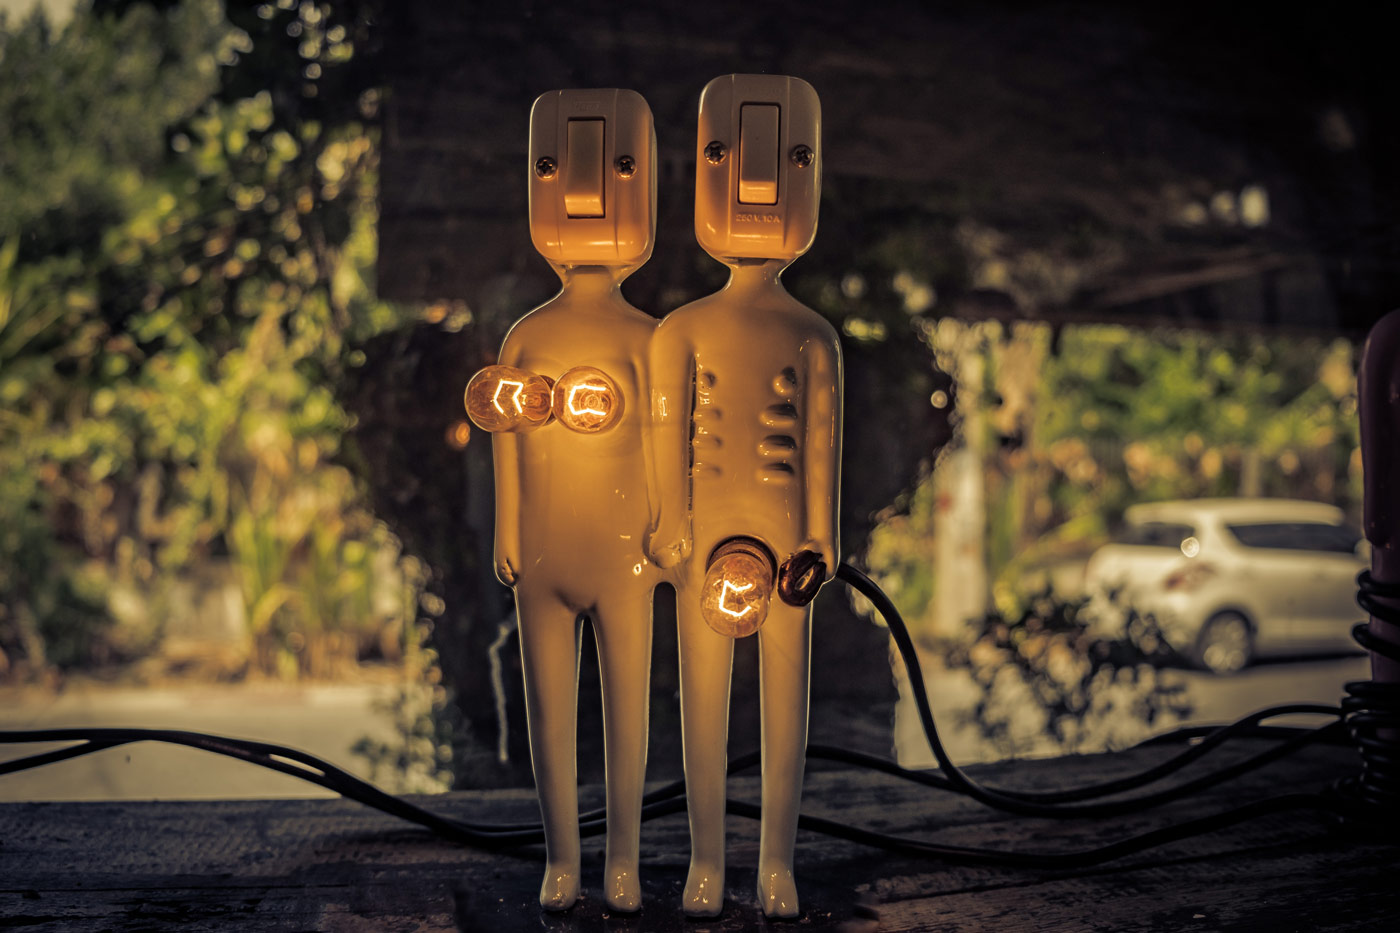 Man and woman electric figures